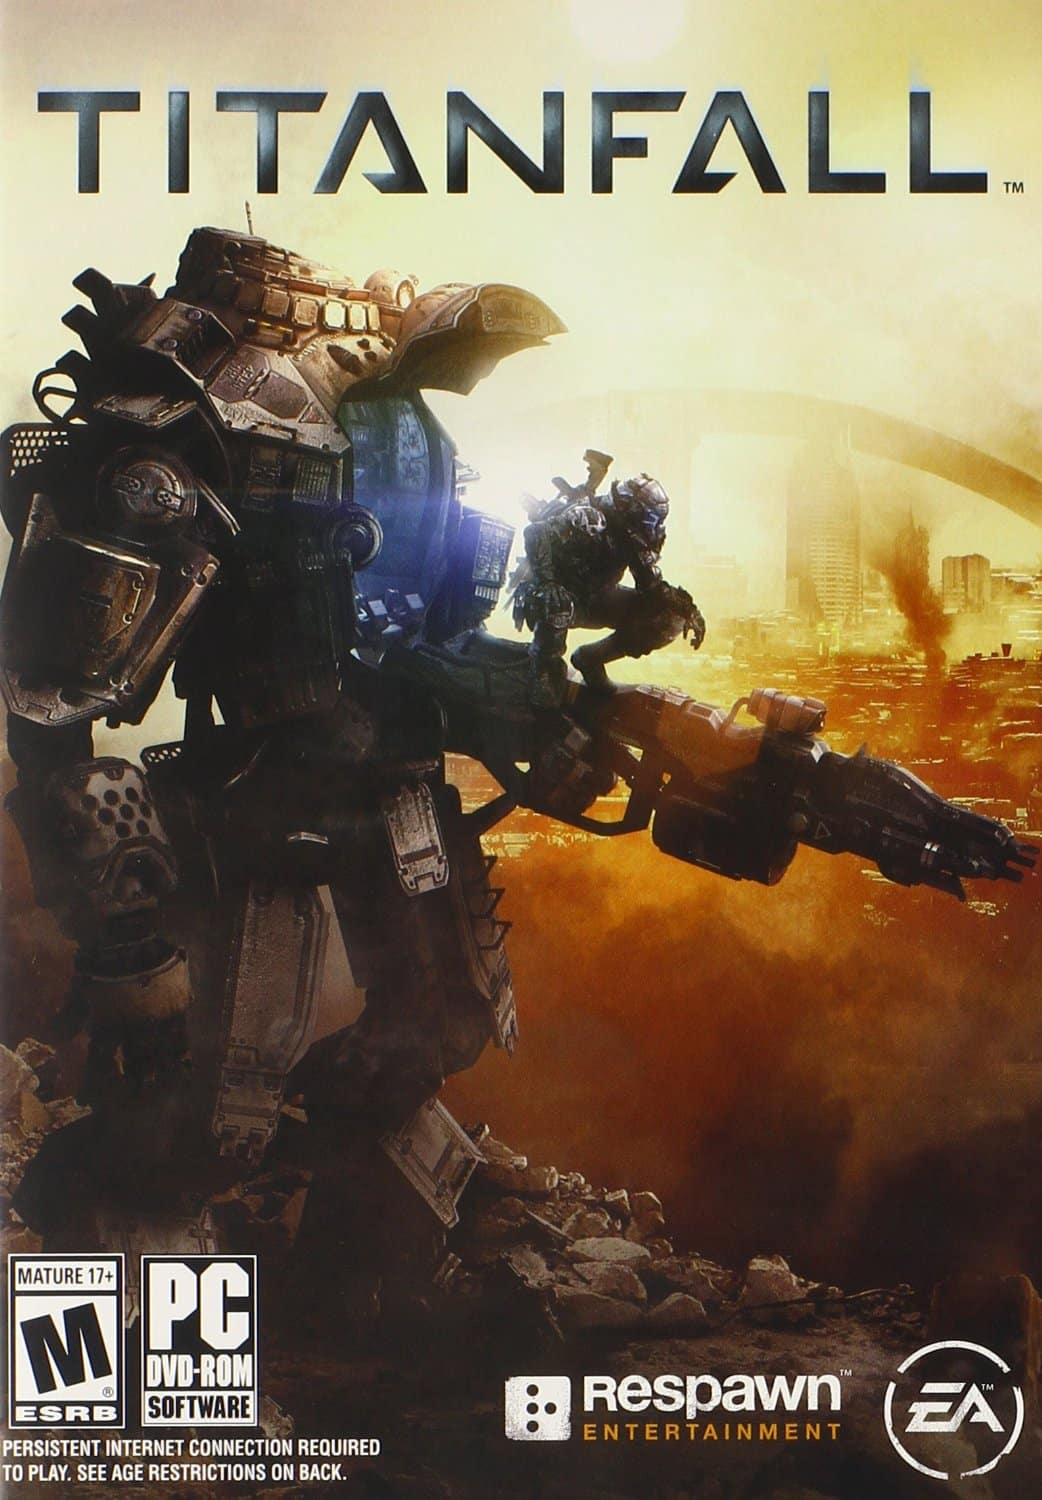 Titanfall [Online Game Code] PC version for $10 @ Amazon.com